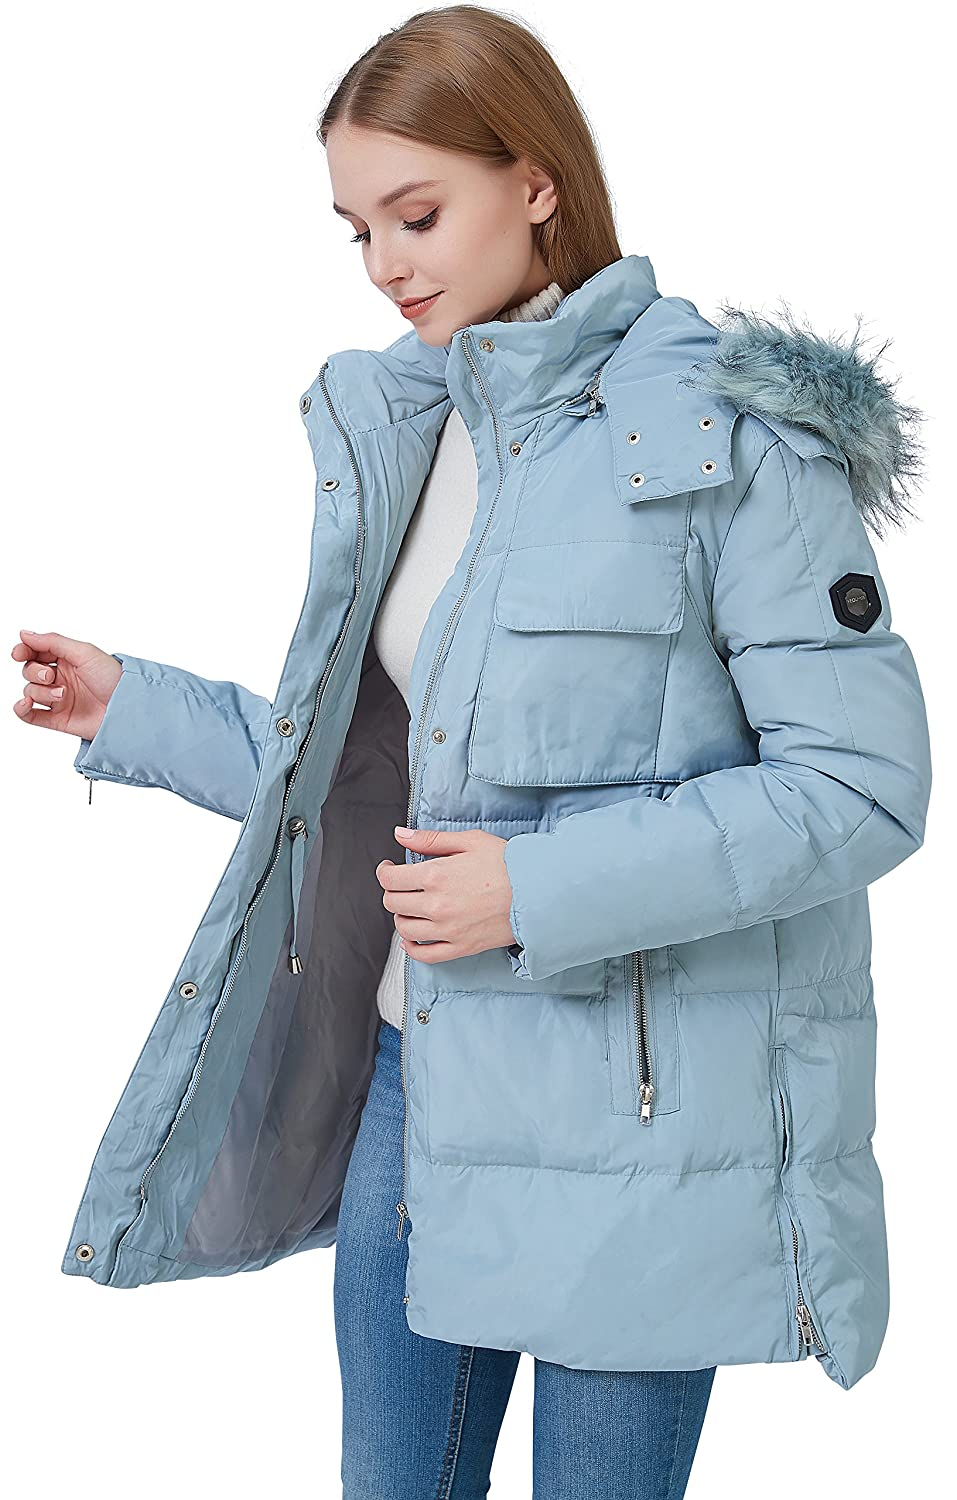 fashciaga Womens Faux Fur Hood Winter Quilted Coat Puffer Lightweight Down Parka Jacket